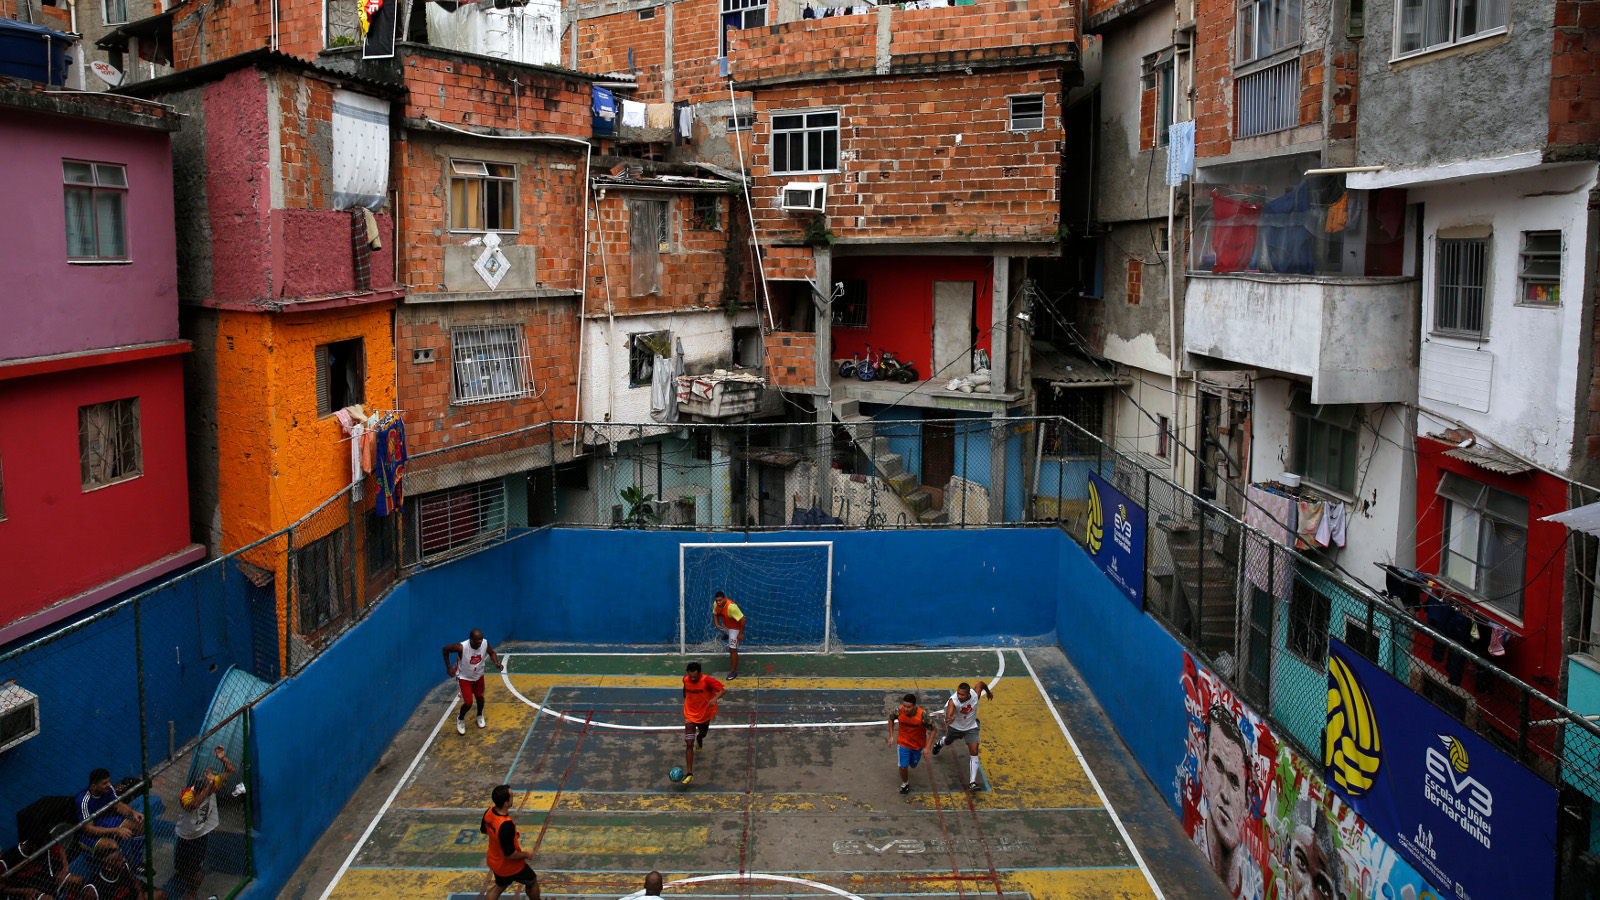 People take part in a soccer match held at the Tavares Bastos slum in Rio de Janeiro May 18, 2014. The World Cup will be held in 12 cities in Brazil from June 12 till July 13. REUTERS/Pilar Olivares (BRAZIL - Tags: SPORT SOCCER TPX IMAGES OF THE DAY)  FOR BEST QUALITY IMAGE ALSO SEE: GF10000109702